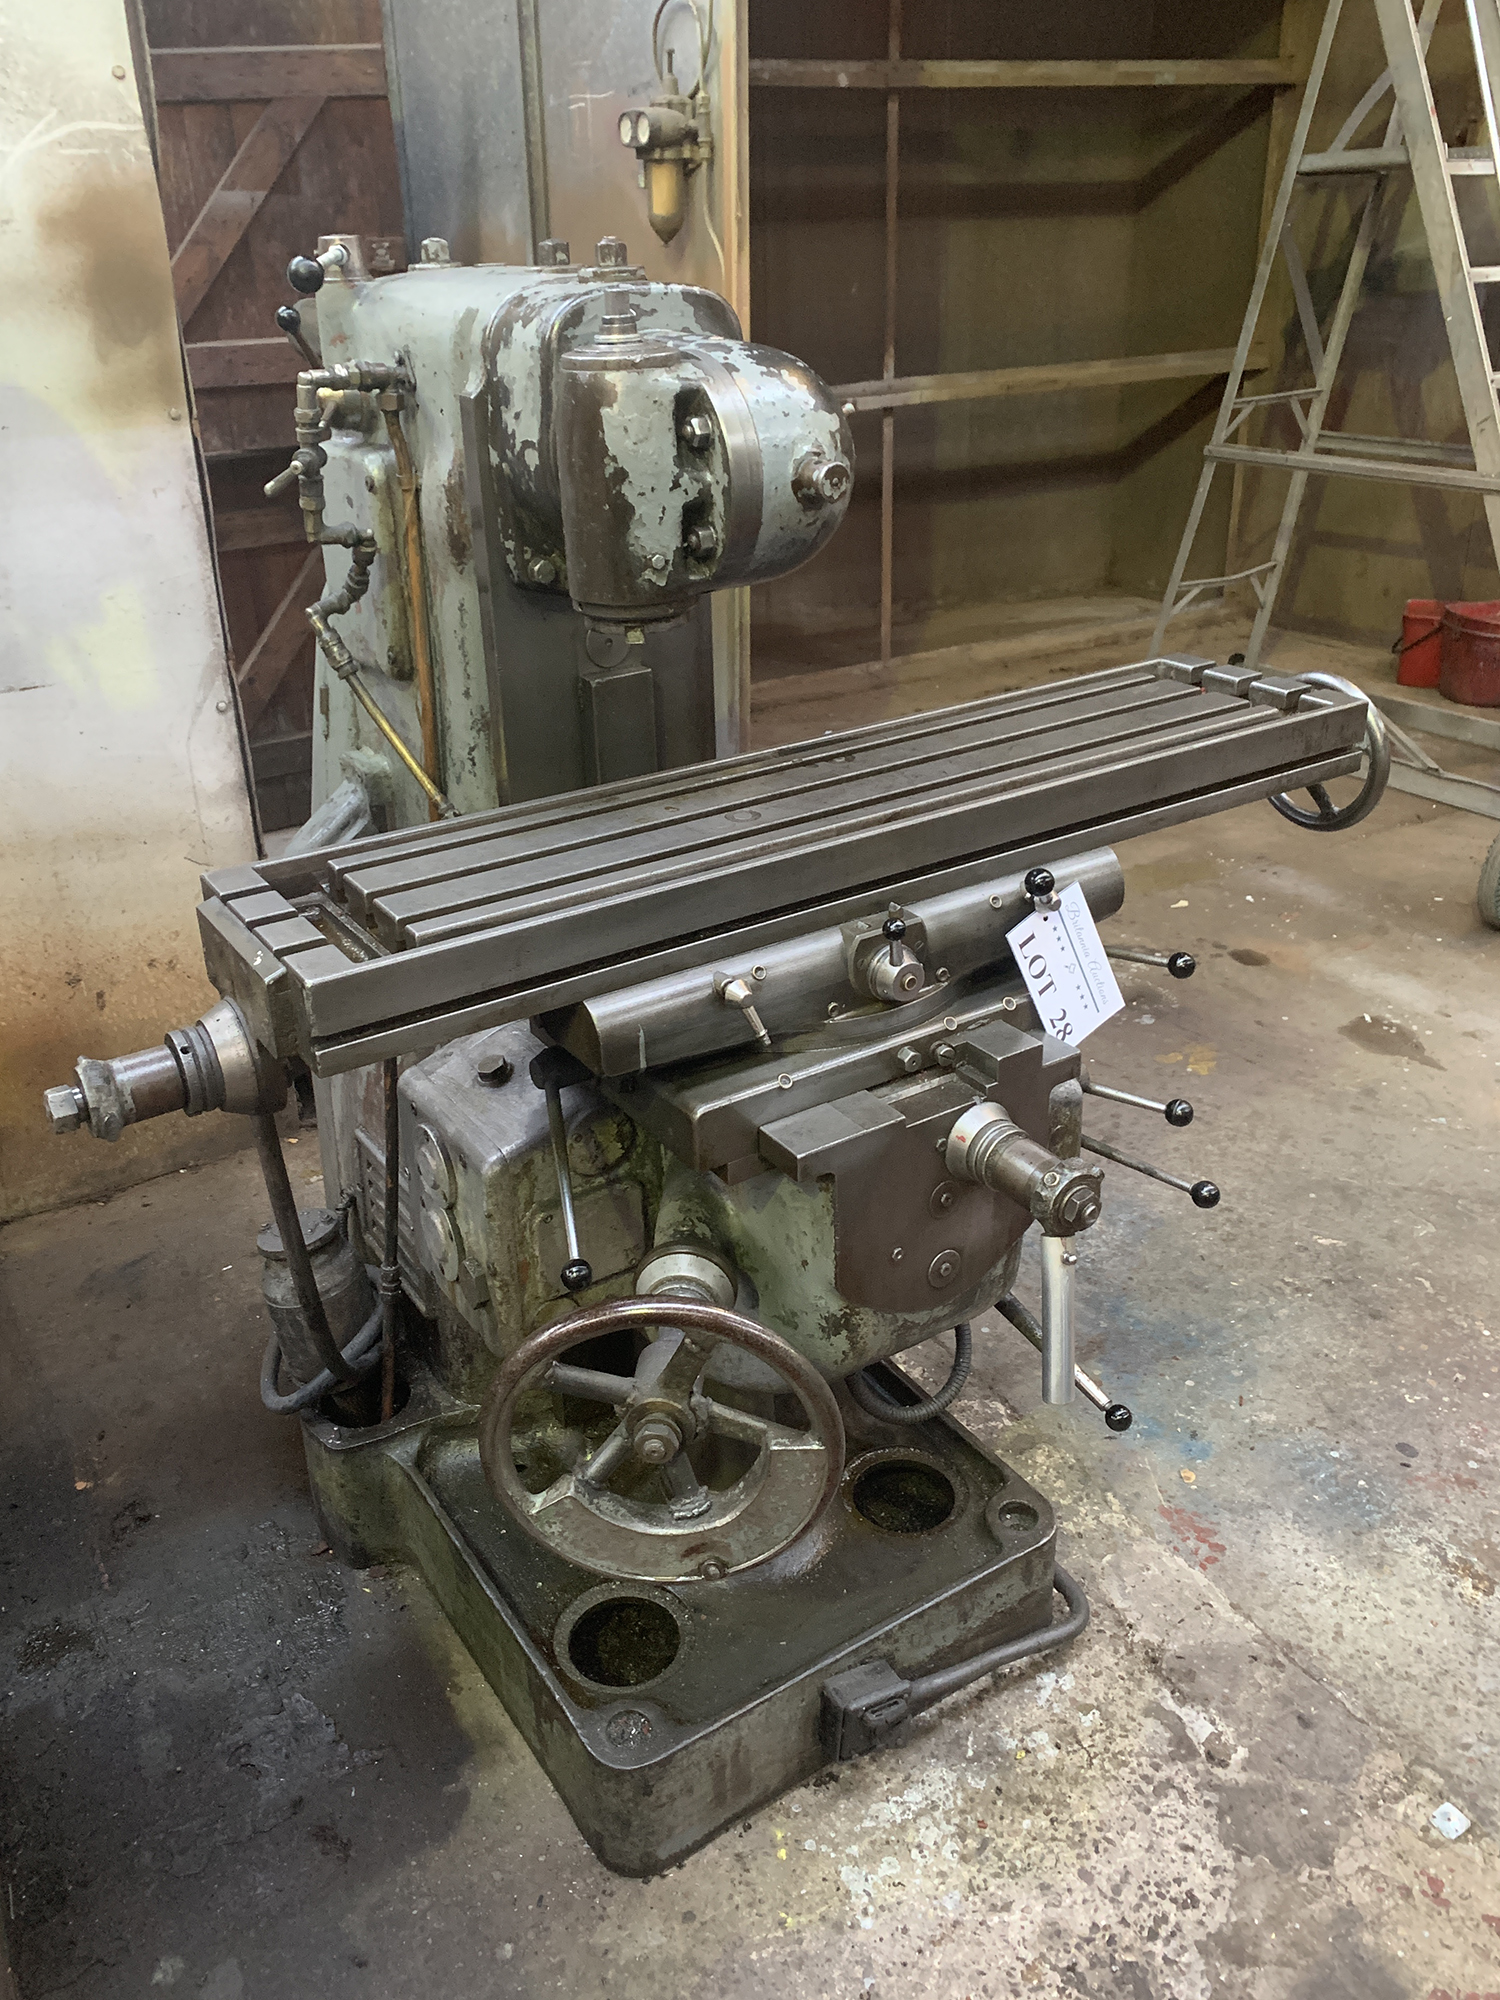 Dufour Universal Milling Machine with Double Swivel Head. Table Size 1100 x 250mm. - Image 2 of 4